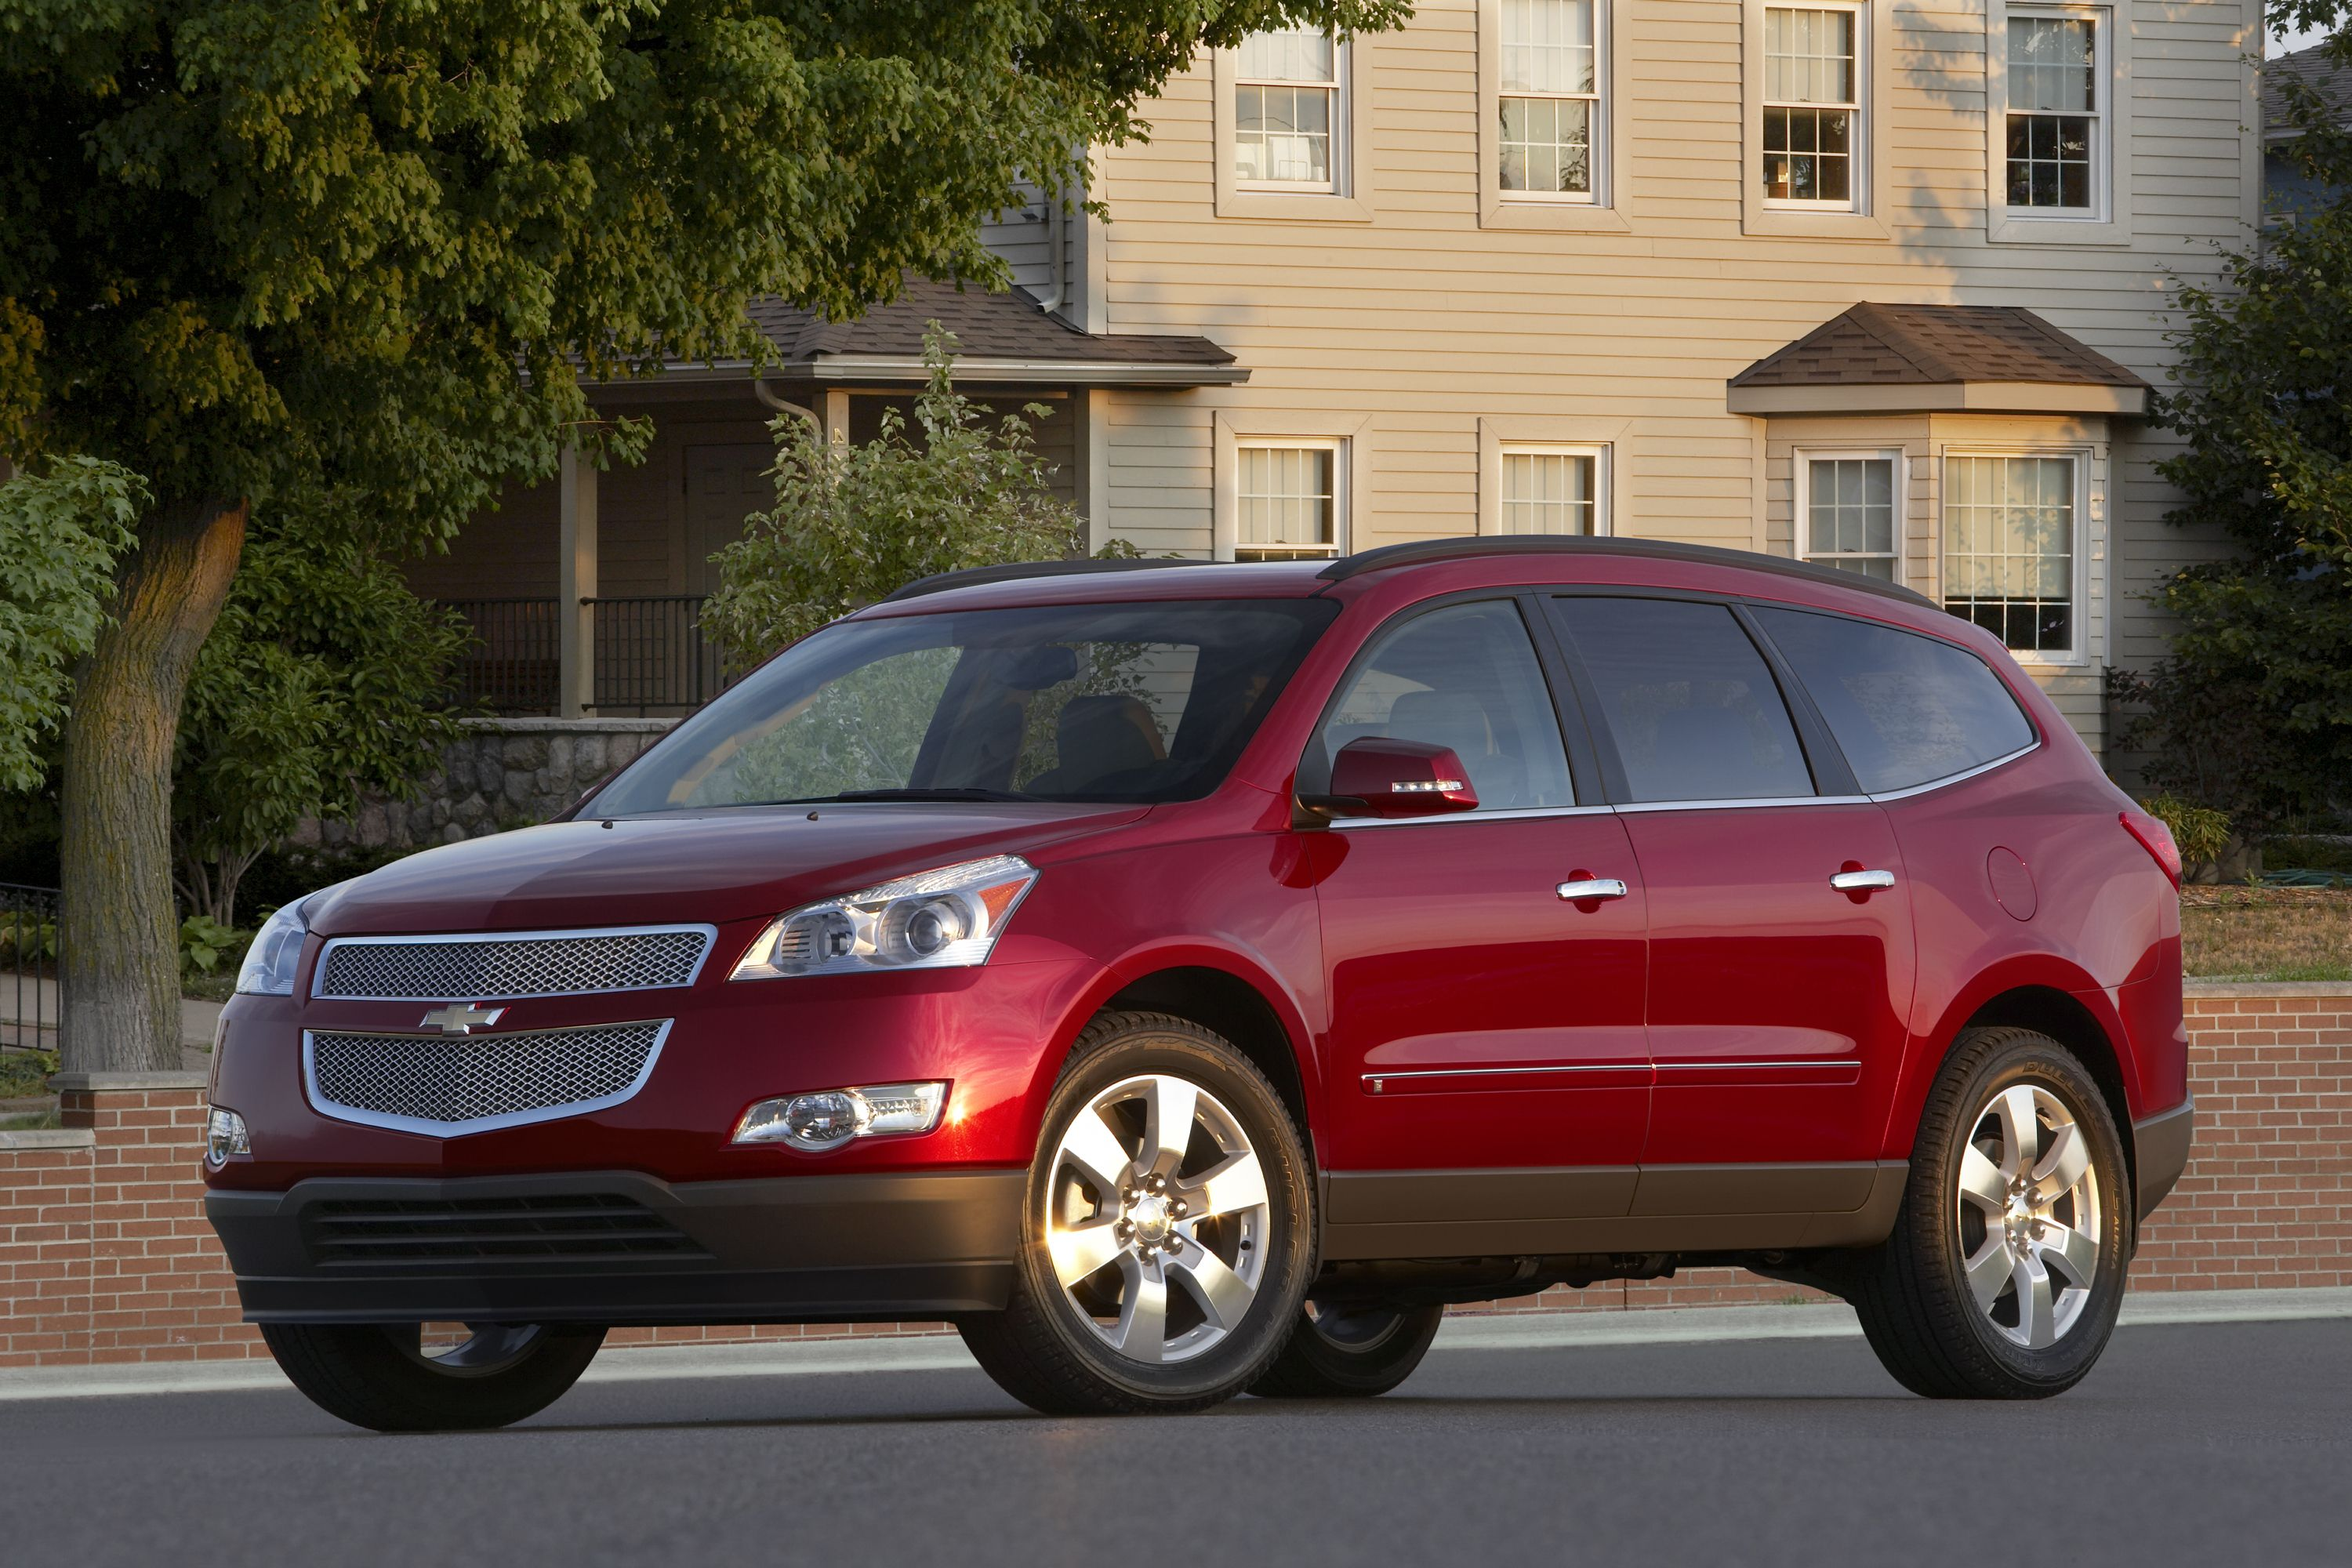 9 Best Reasons to Buy an SUV or Crossover